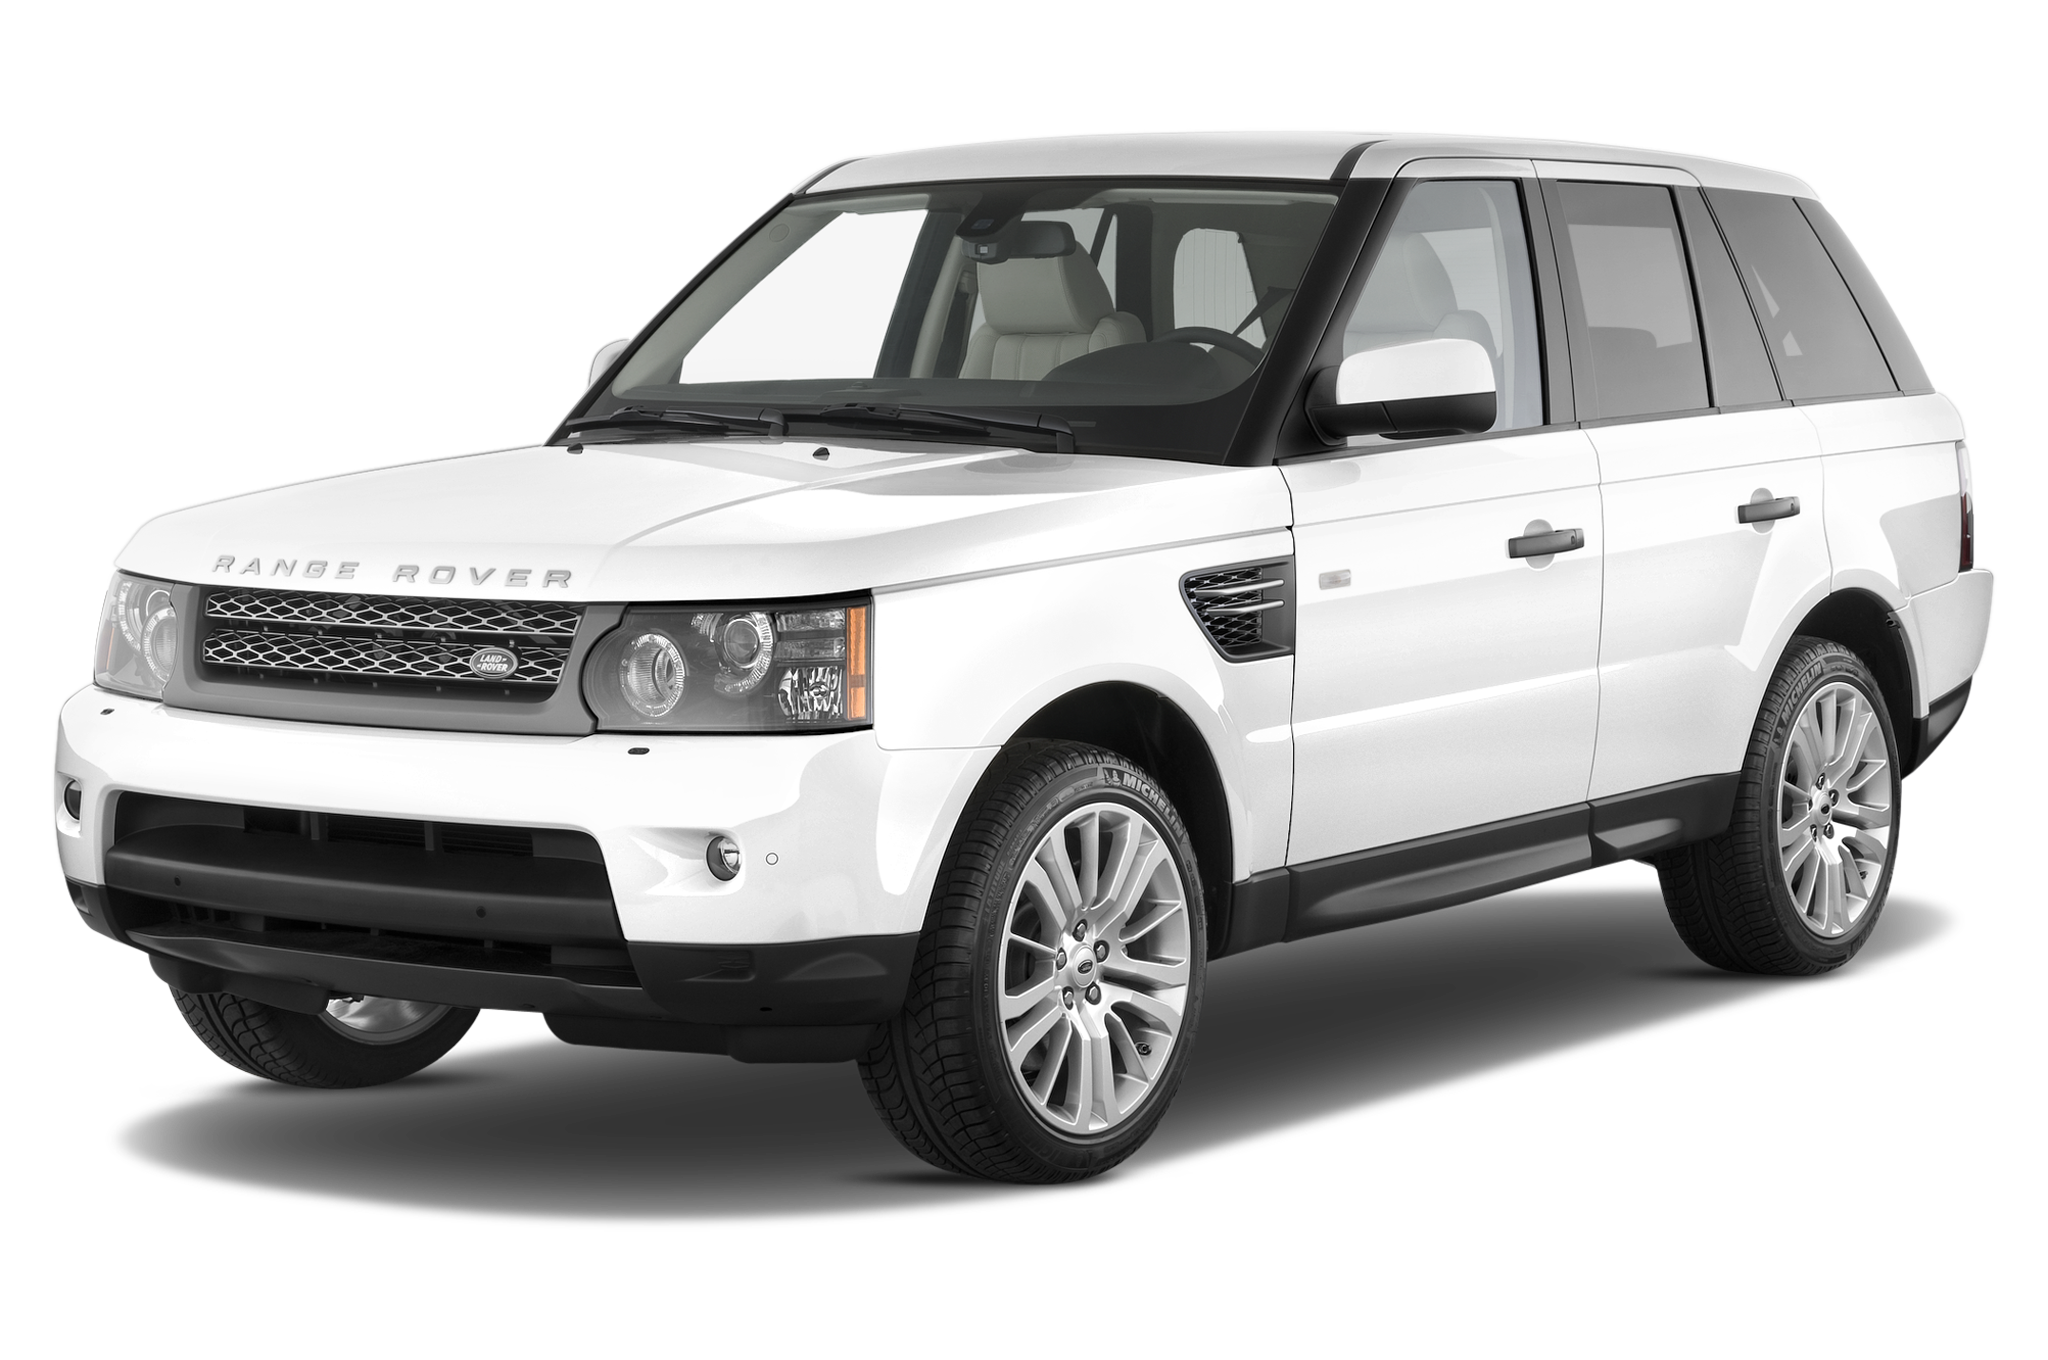 2010 Land Rover Range Rover Sport Supercharged Land Rover Luxury Suv Review Automobile Magazine